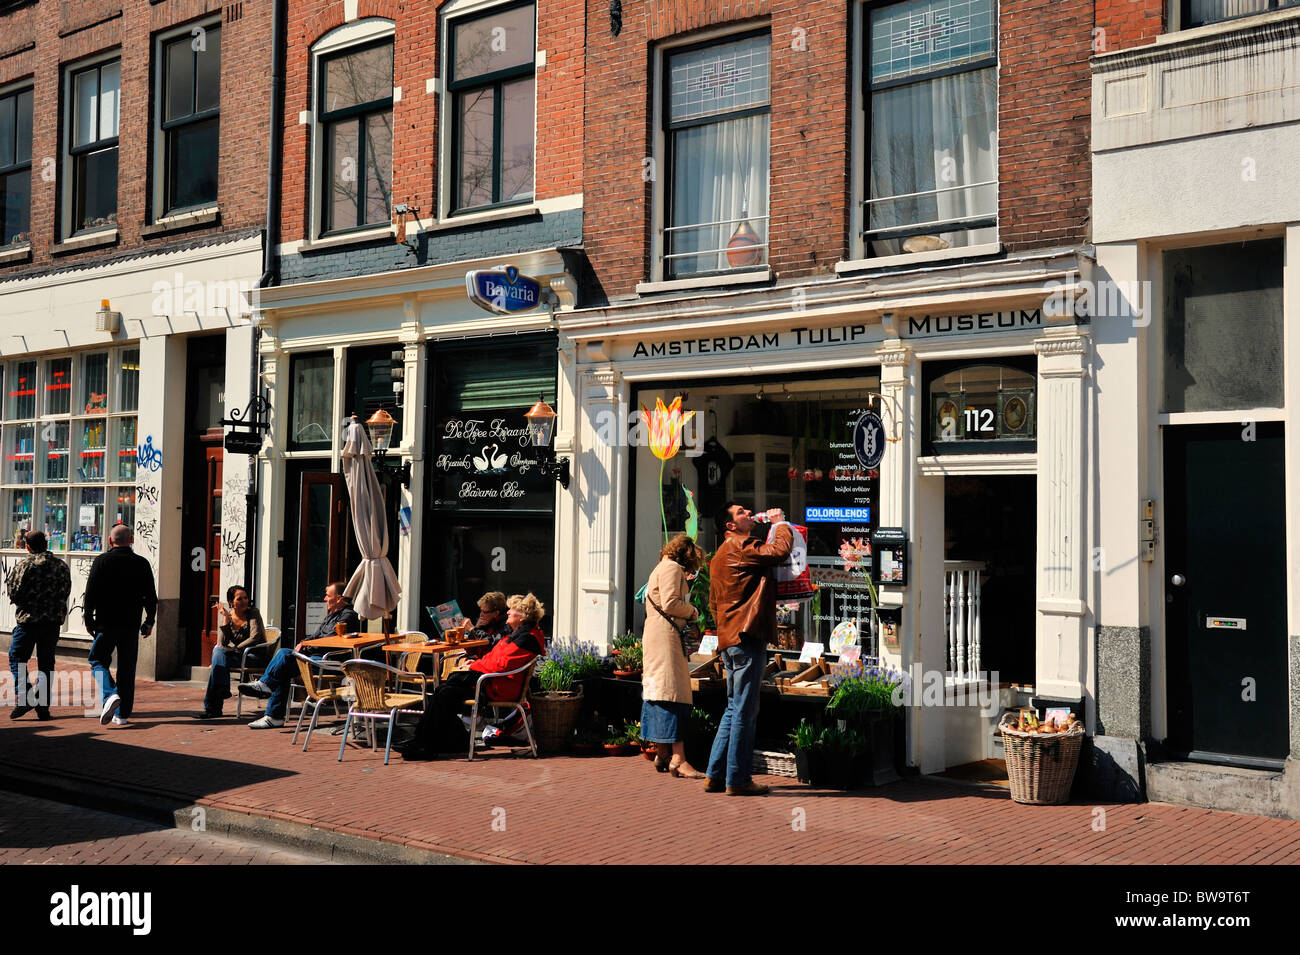 Amsterdam Tulip Museum prinsengracht in the Netherlands - Stock Image